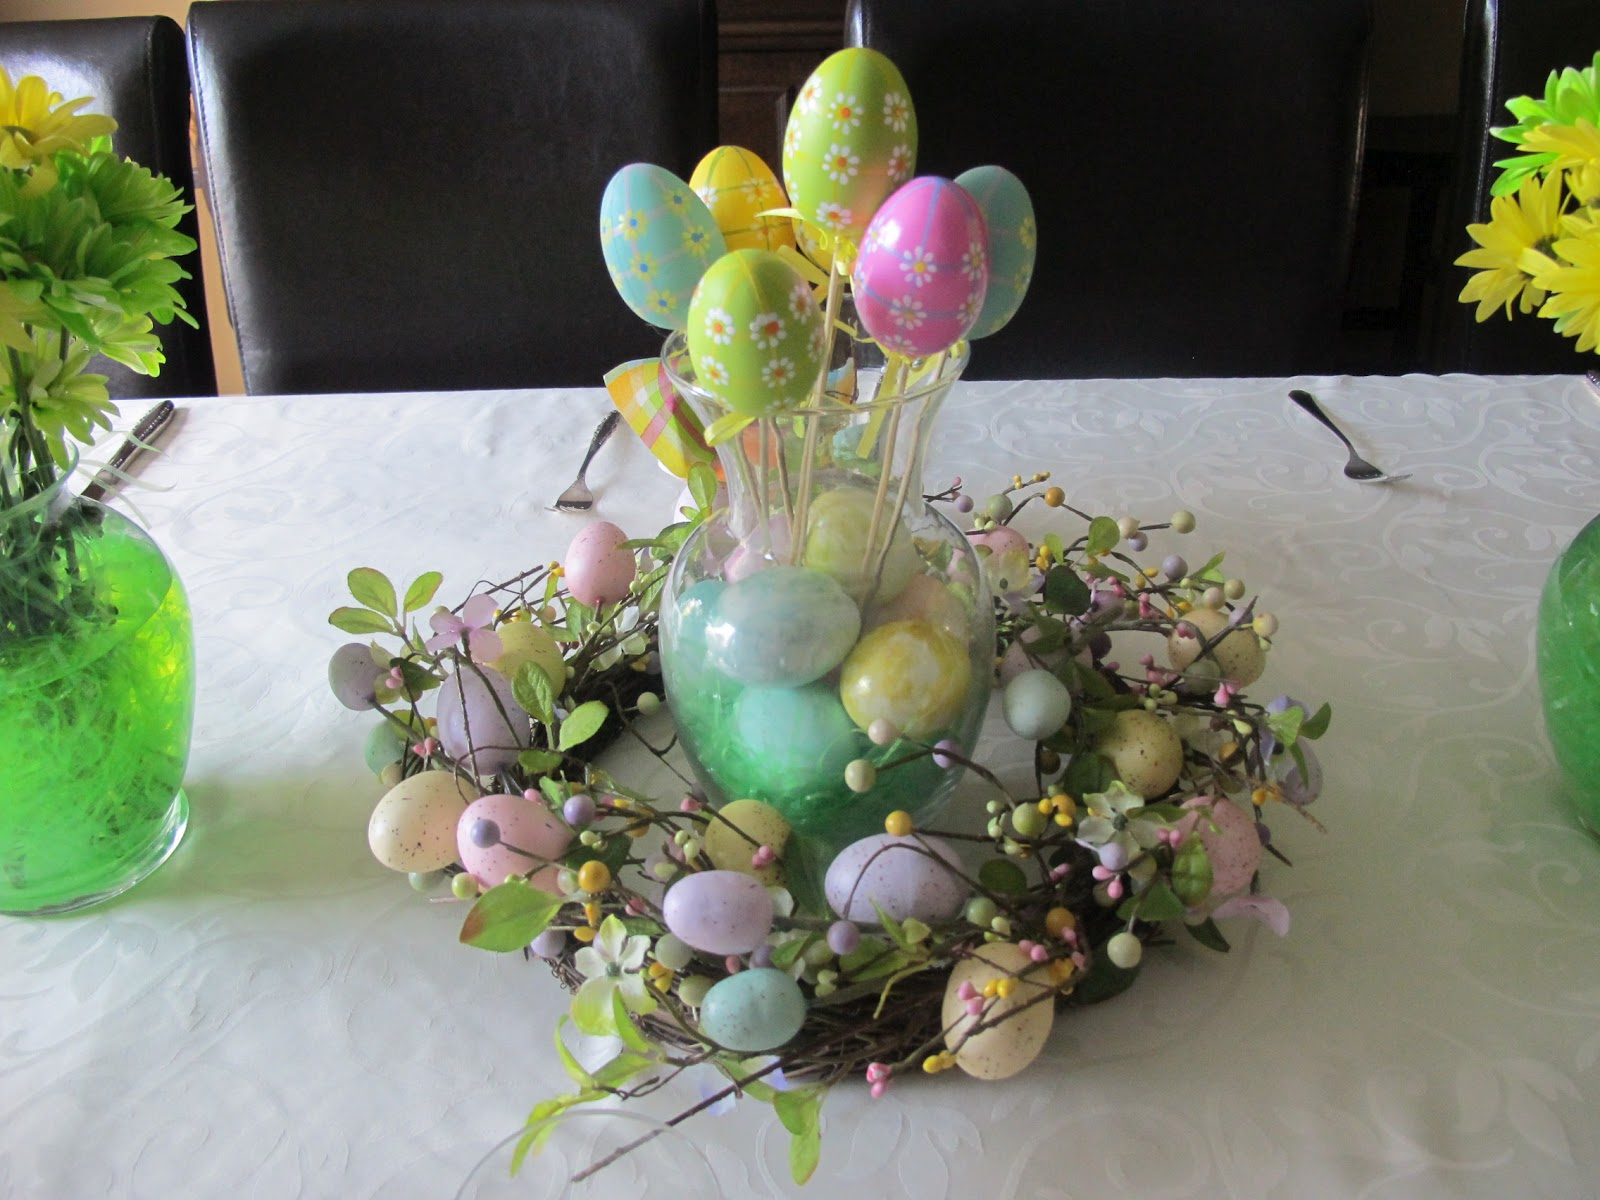 Mia cucina easter table decorations - Table easter decorations ...